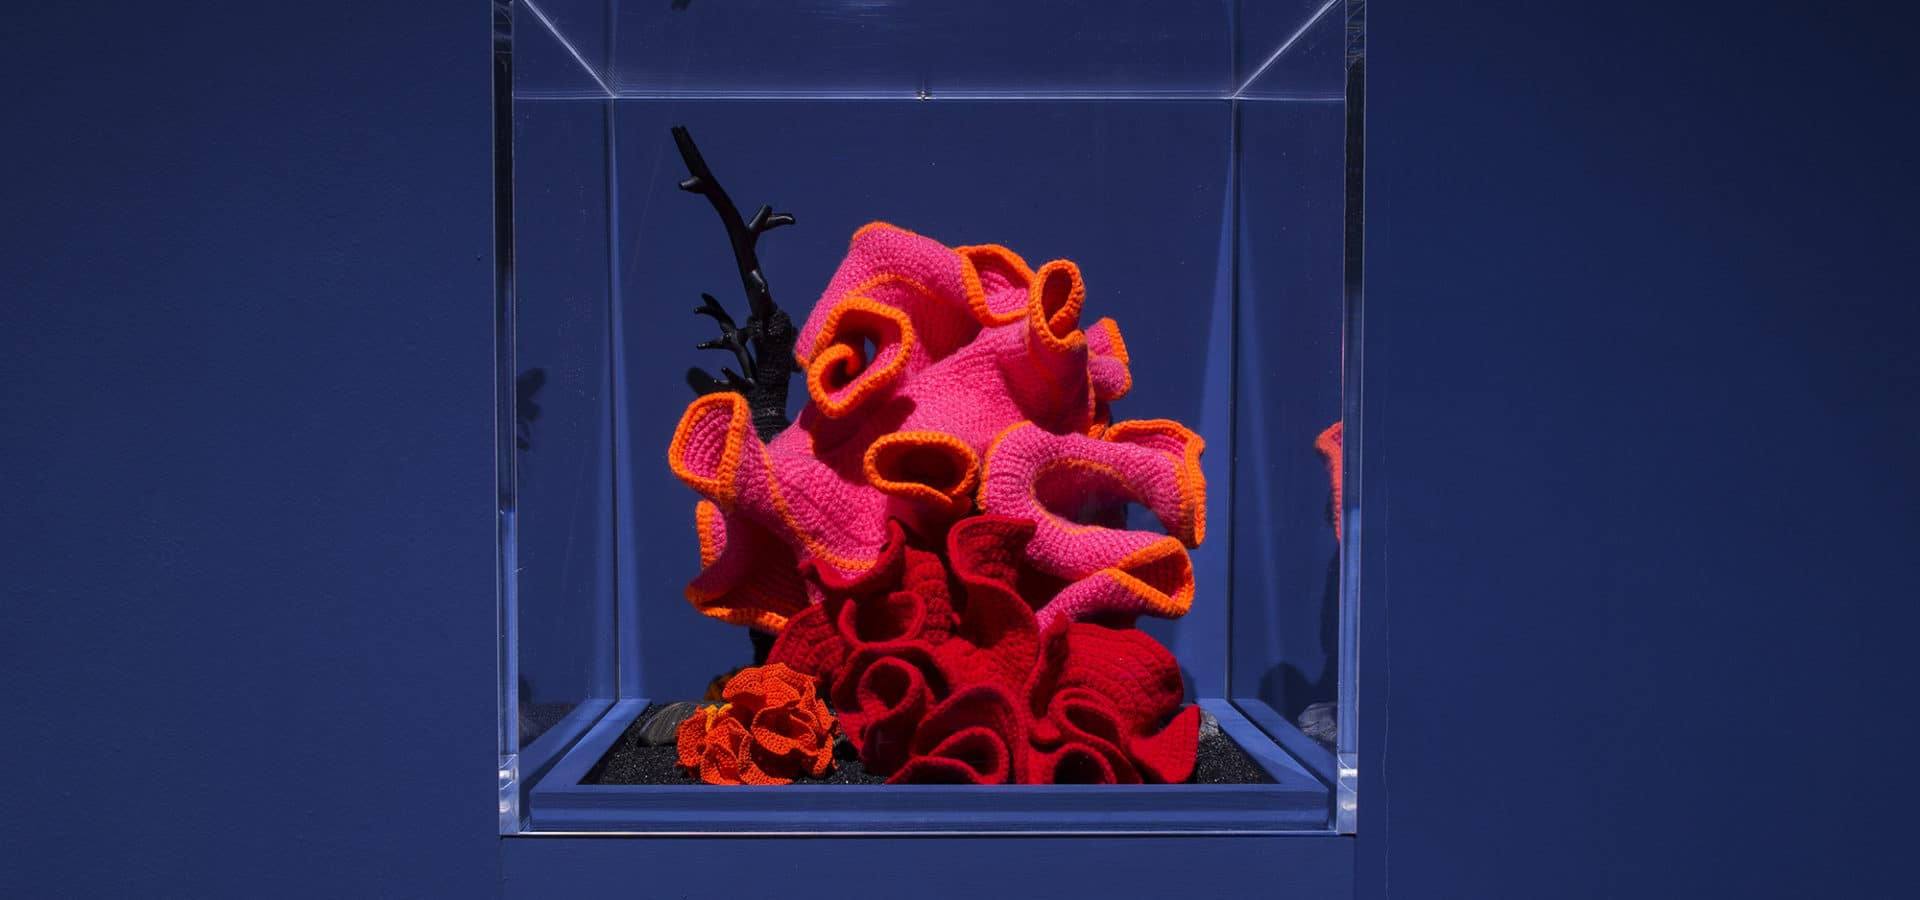 Christine and Margaret Wertheim's Crochet Coral Reef were included at the Venice Biennale.